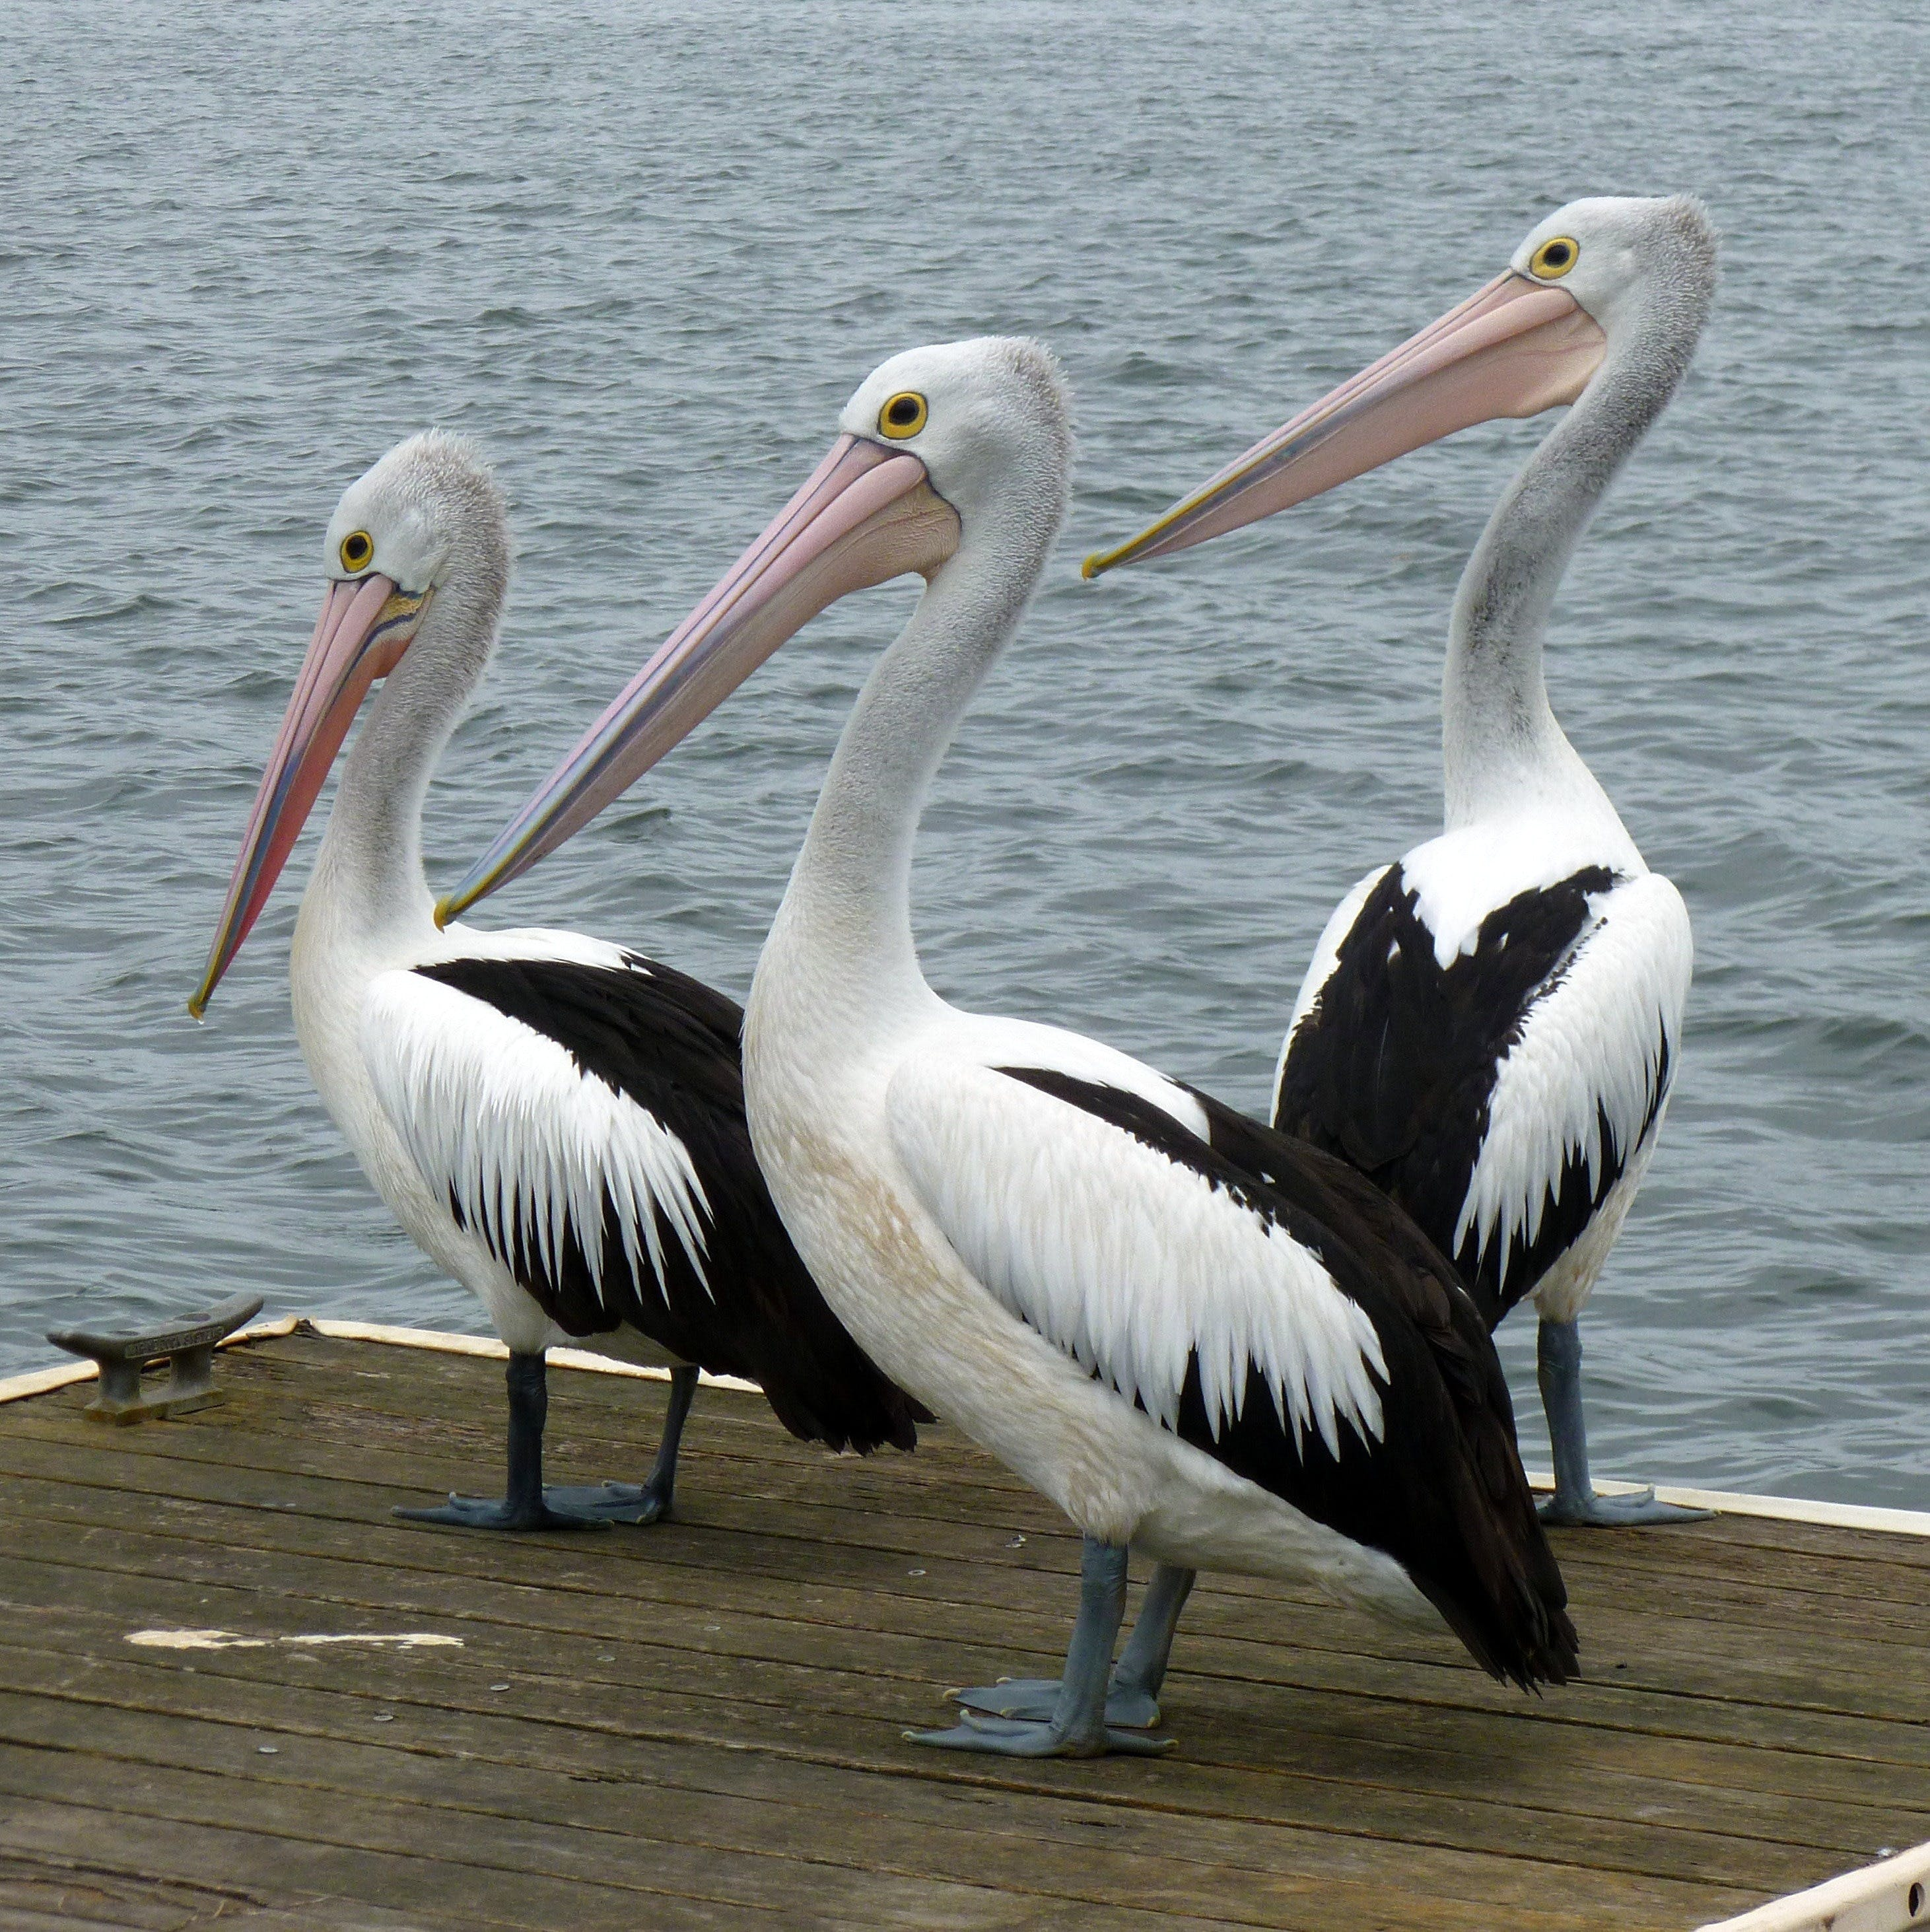 Pelican Feeding - Accommodation Tasmania